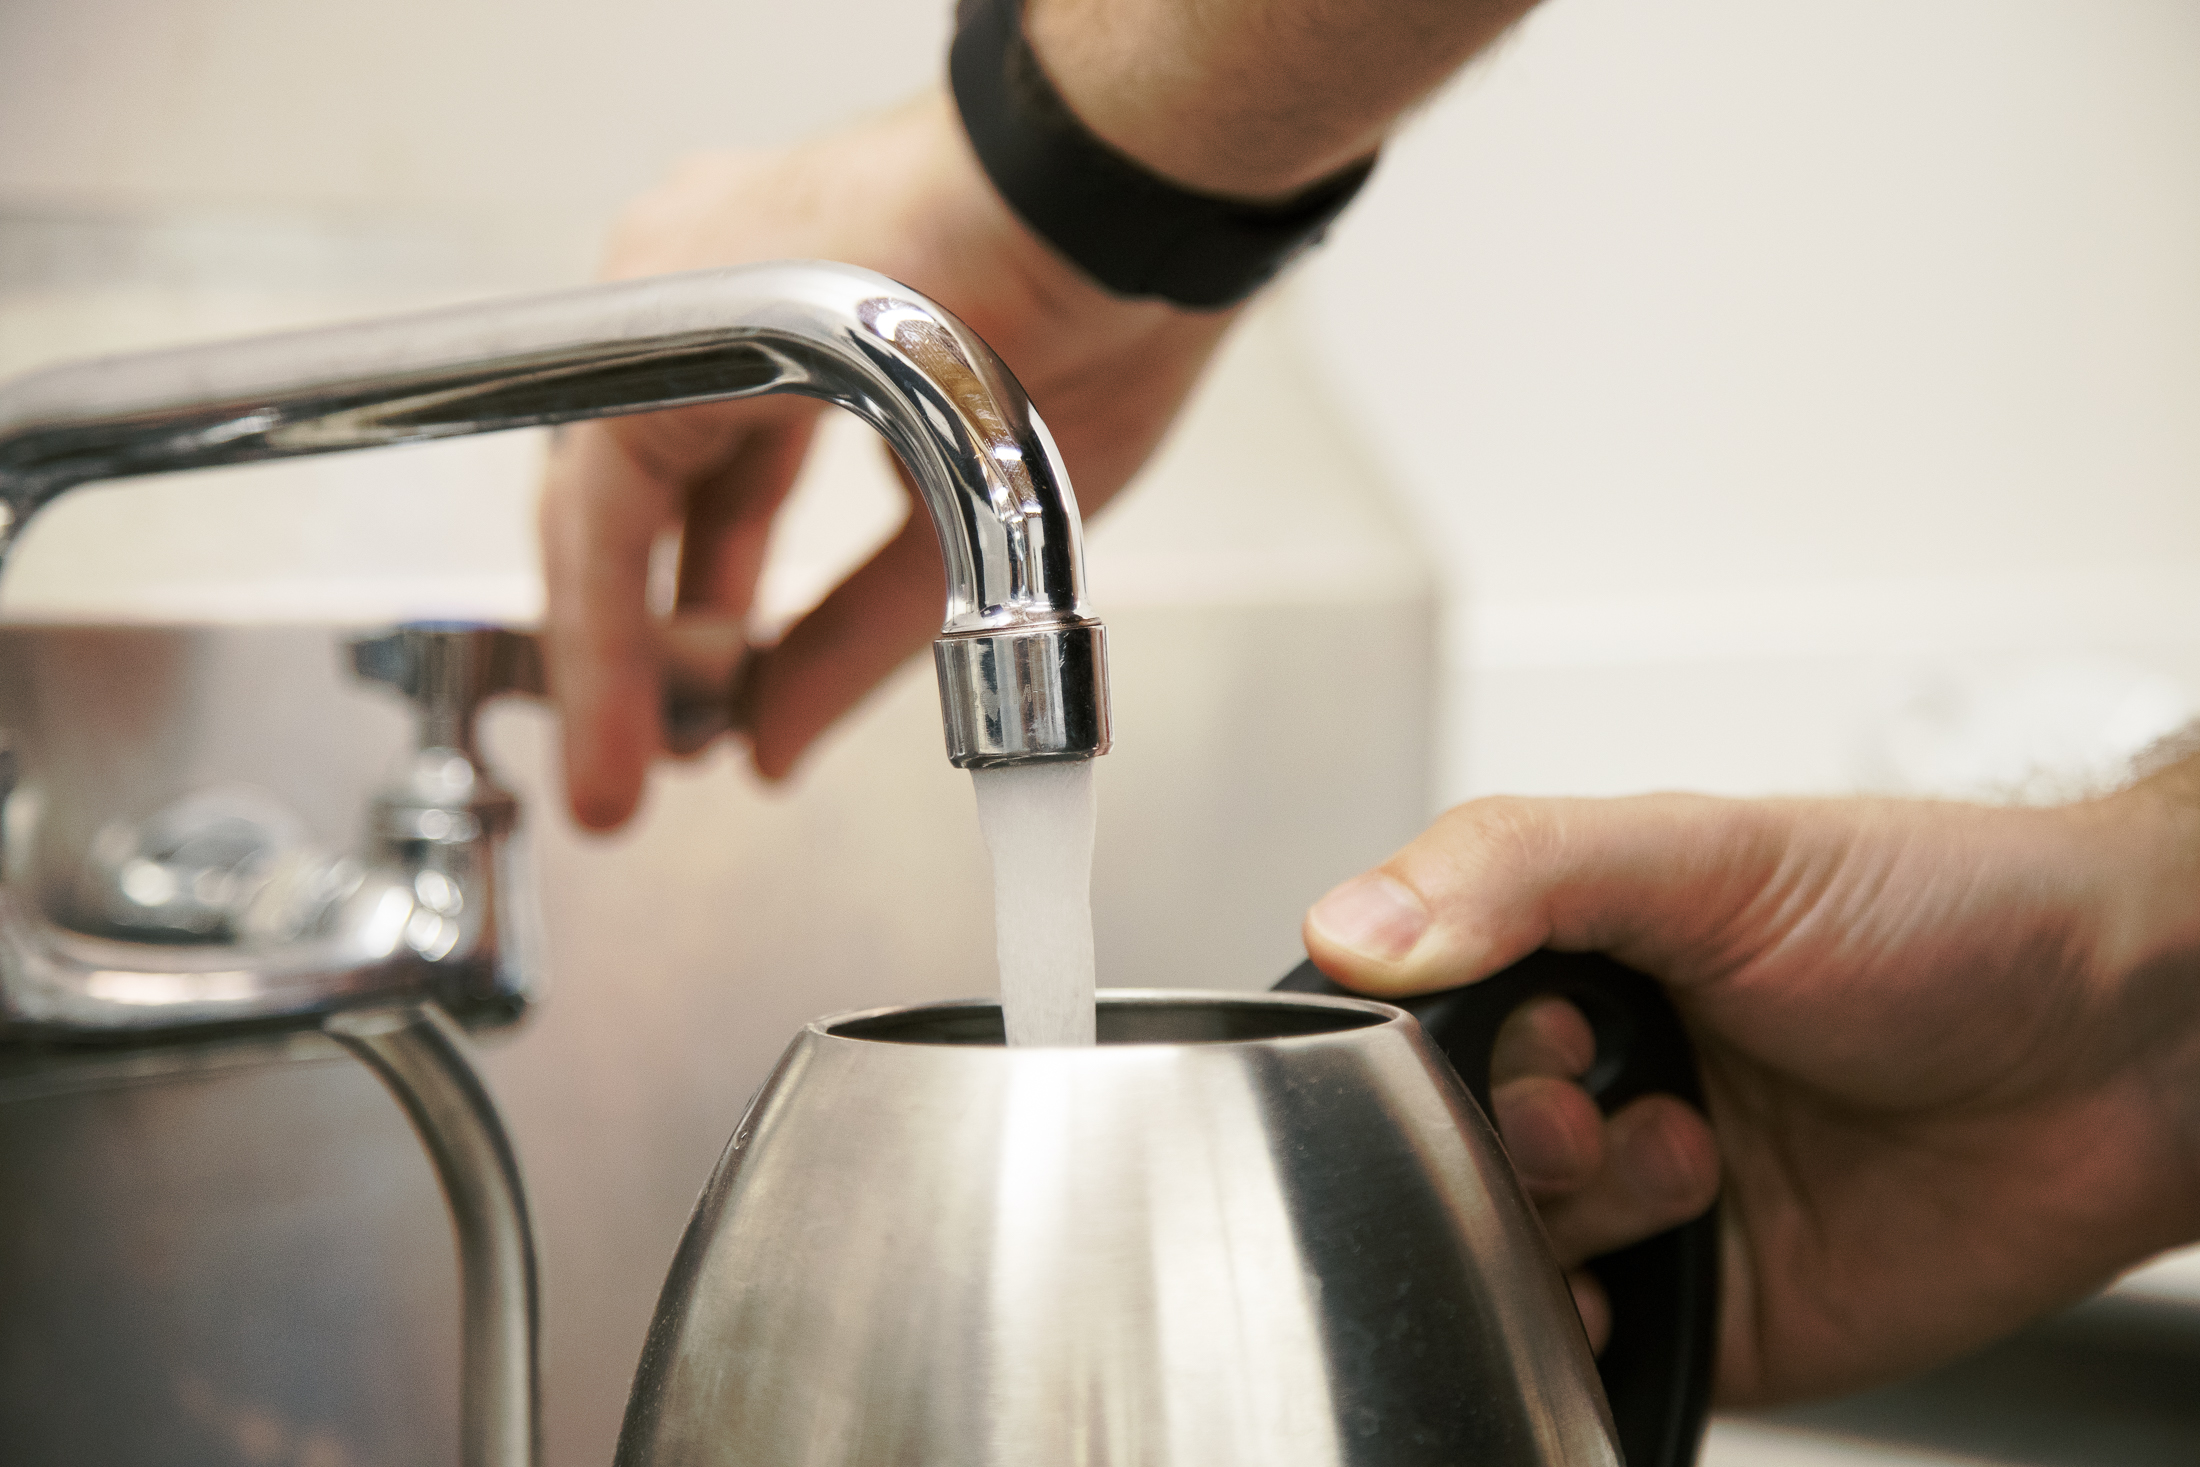 Water coming out of a faucet into a gooseneck kettle.